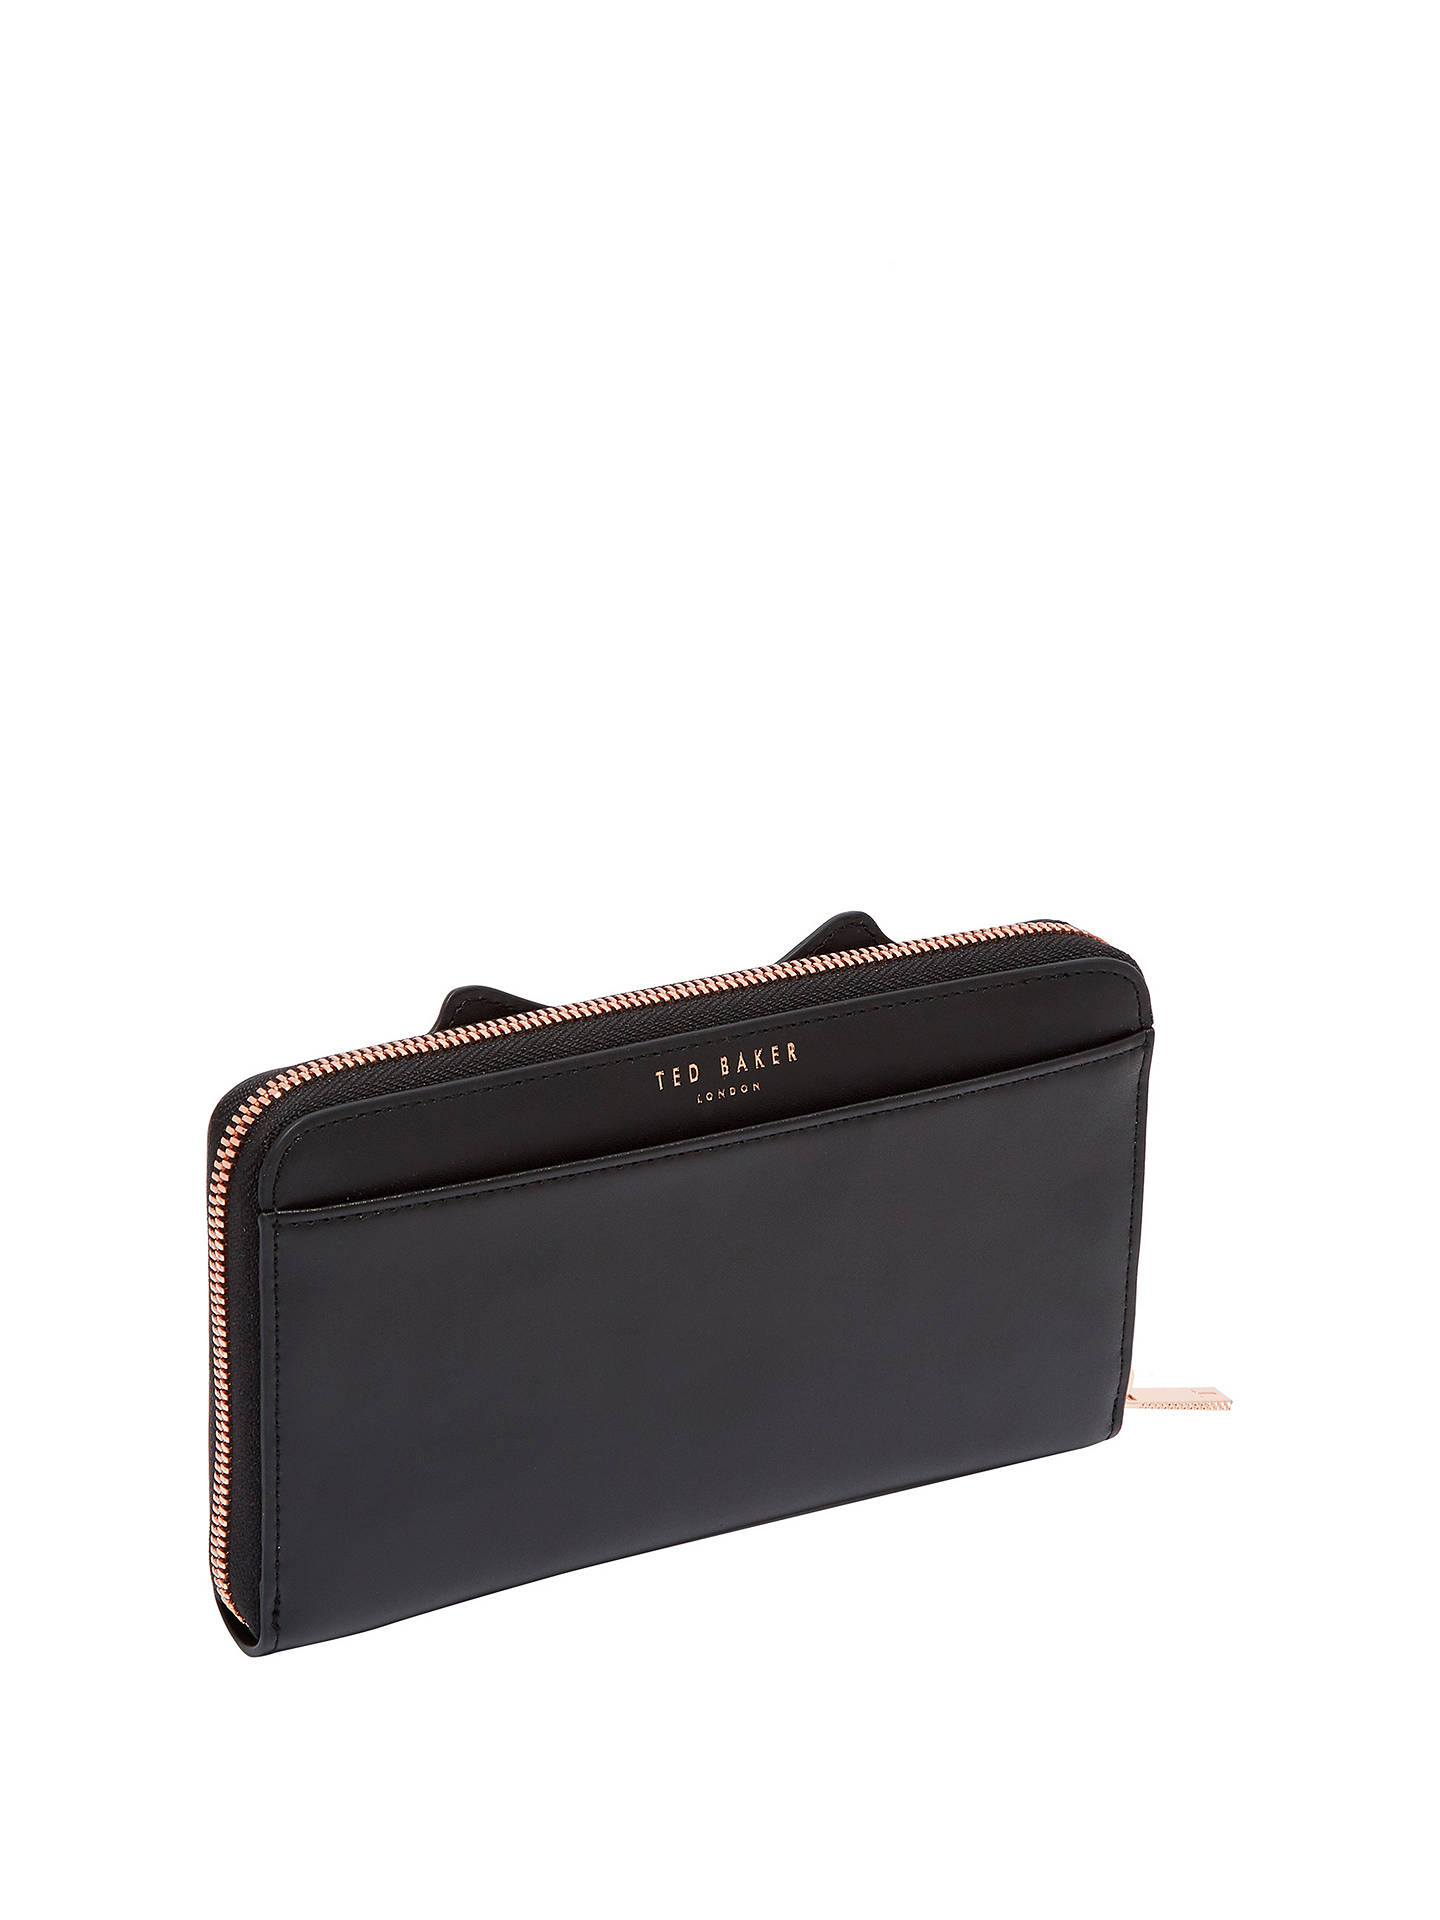 68d377937d2 ... Buy Ted Baker Tammy Leather Cat Zipped Matinee Purse, Black Online at  johnlewis.com ...